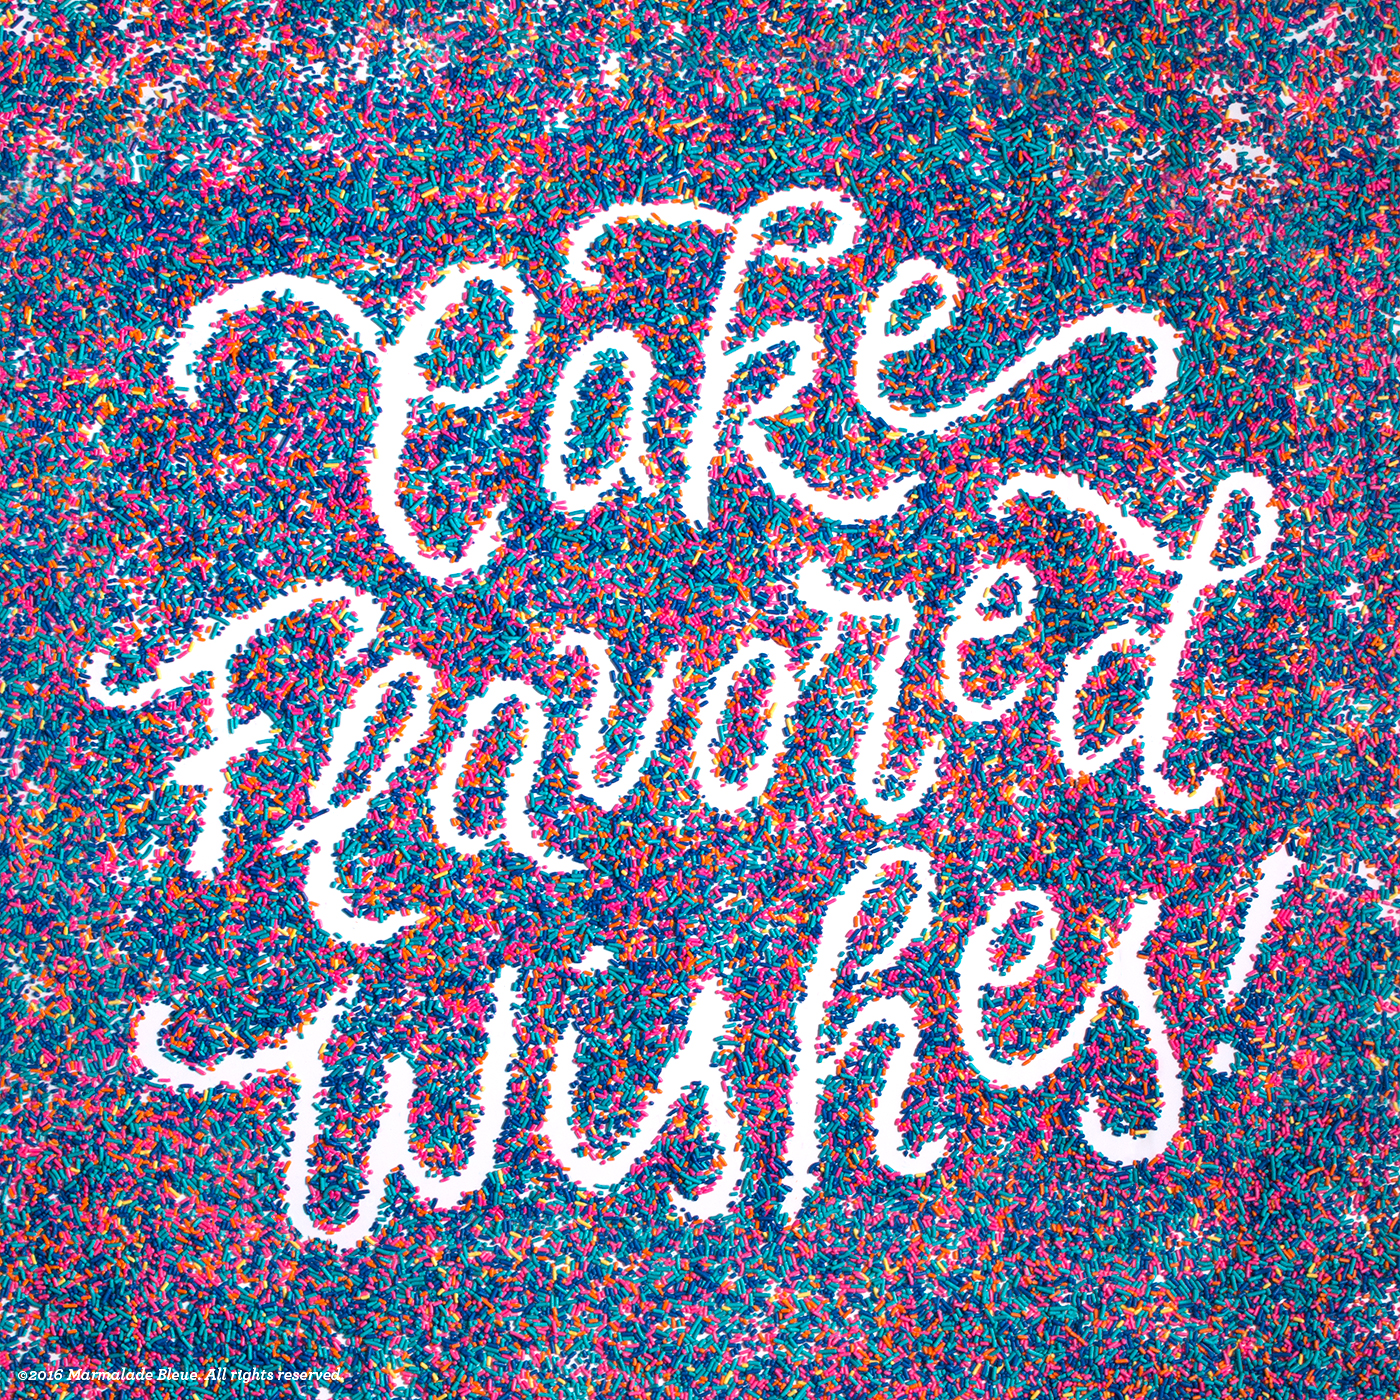 Cake-Flavored-Wishes-square.jpg